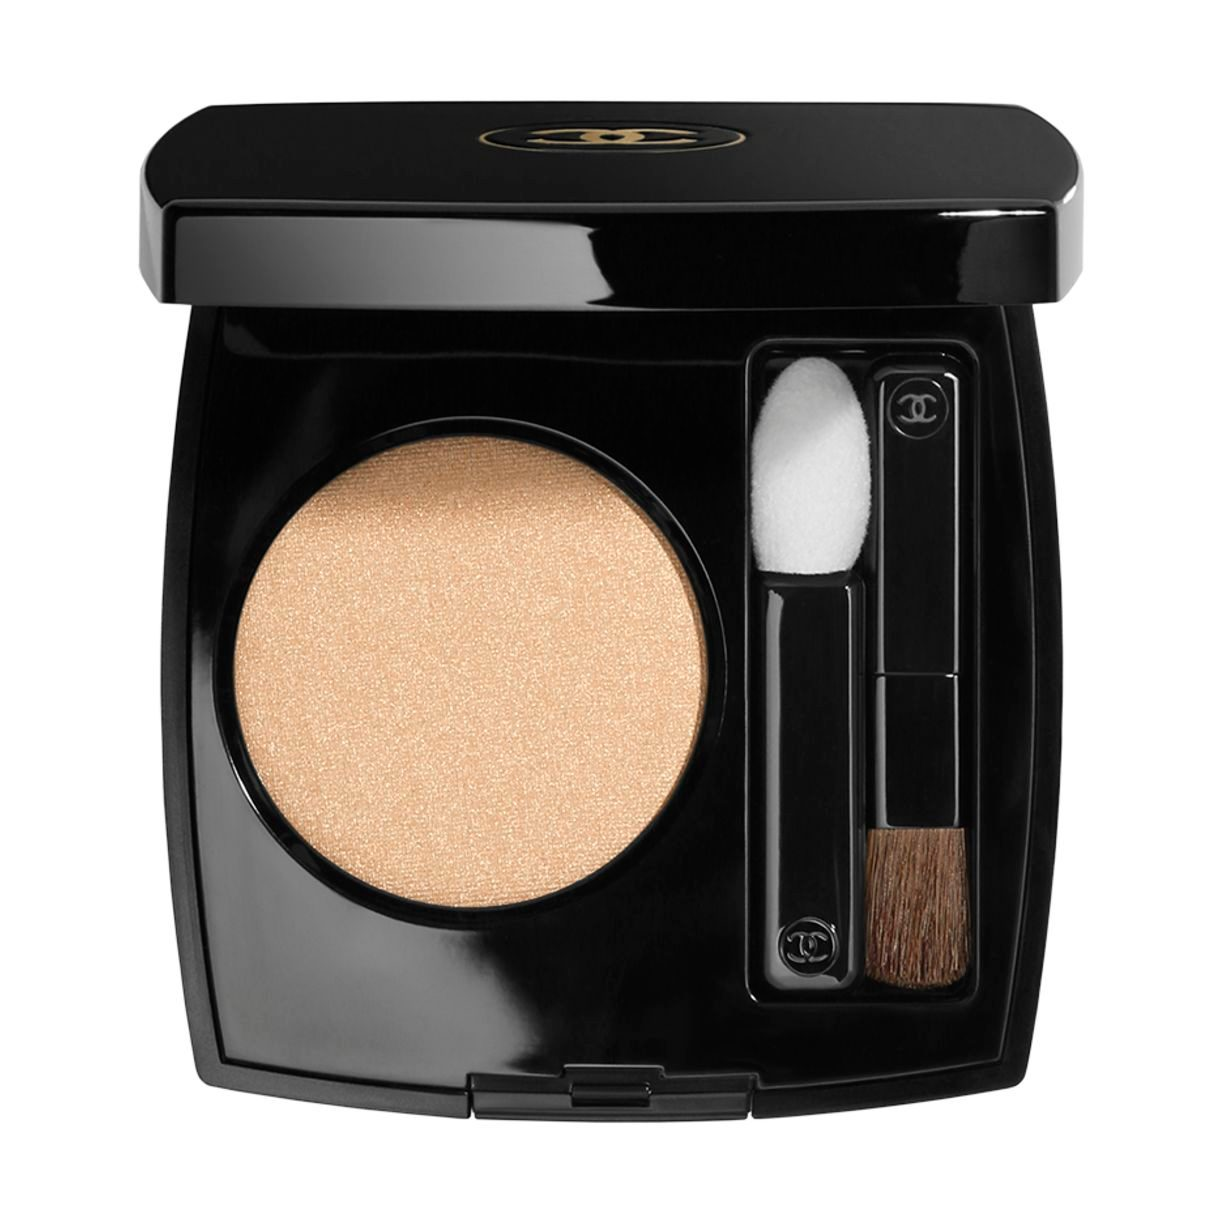 OMBRE PREMIÈRE LONGWEAR POWDER EYESHADOW 46 HIGH-PROFILE 2.2G